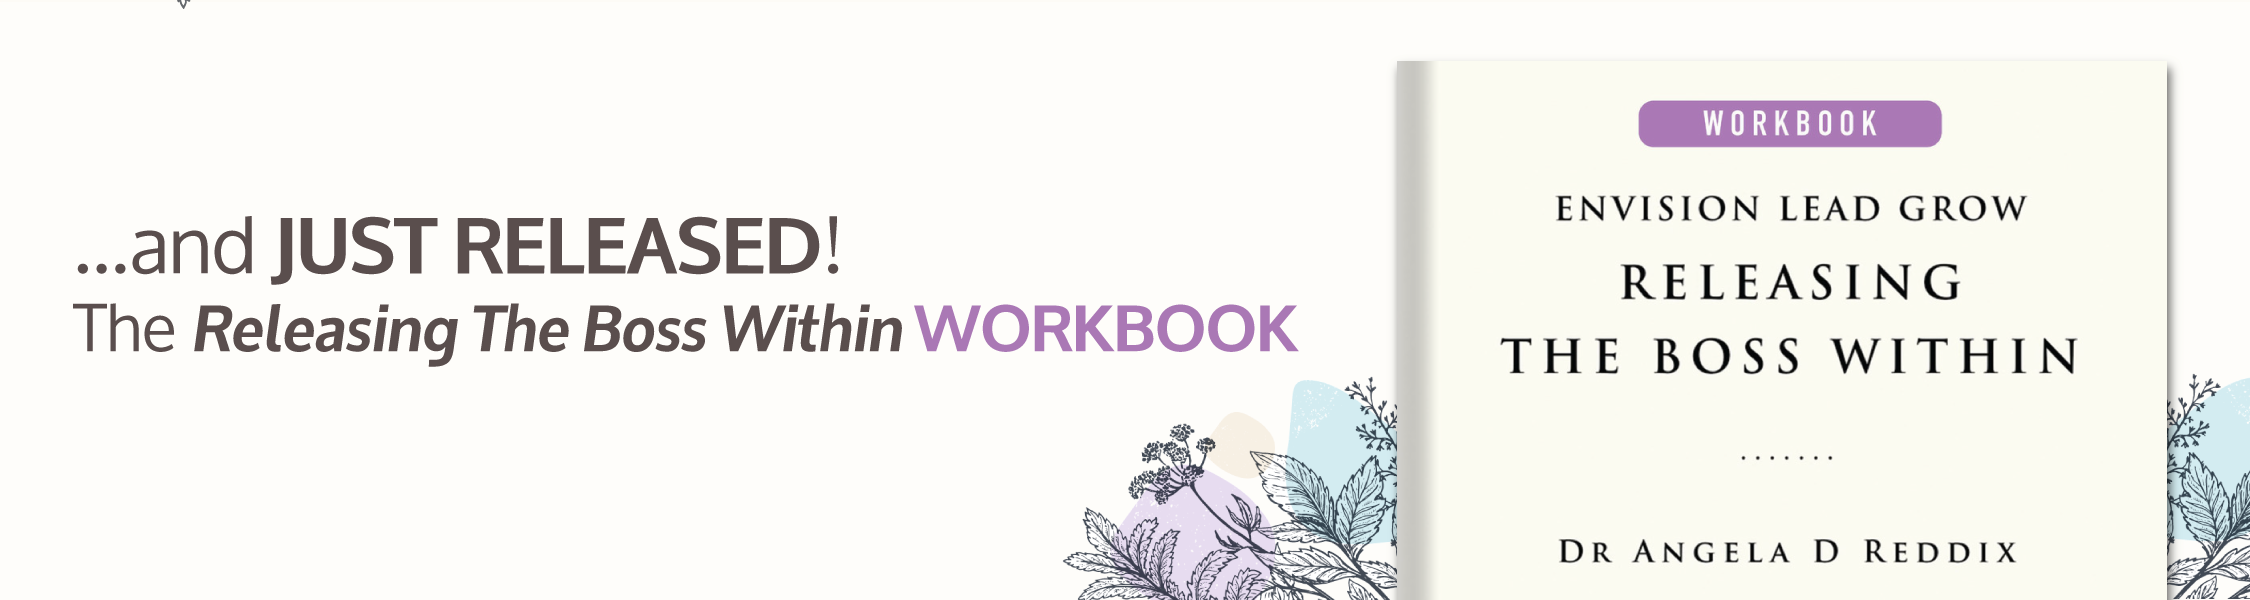 ...and JUST RELEASED! The Releasing The Boss Within WORKBOOK